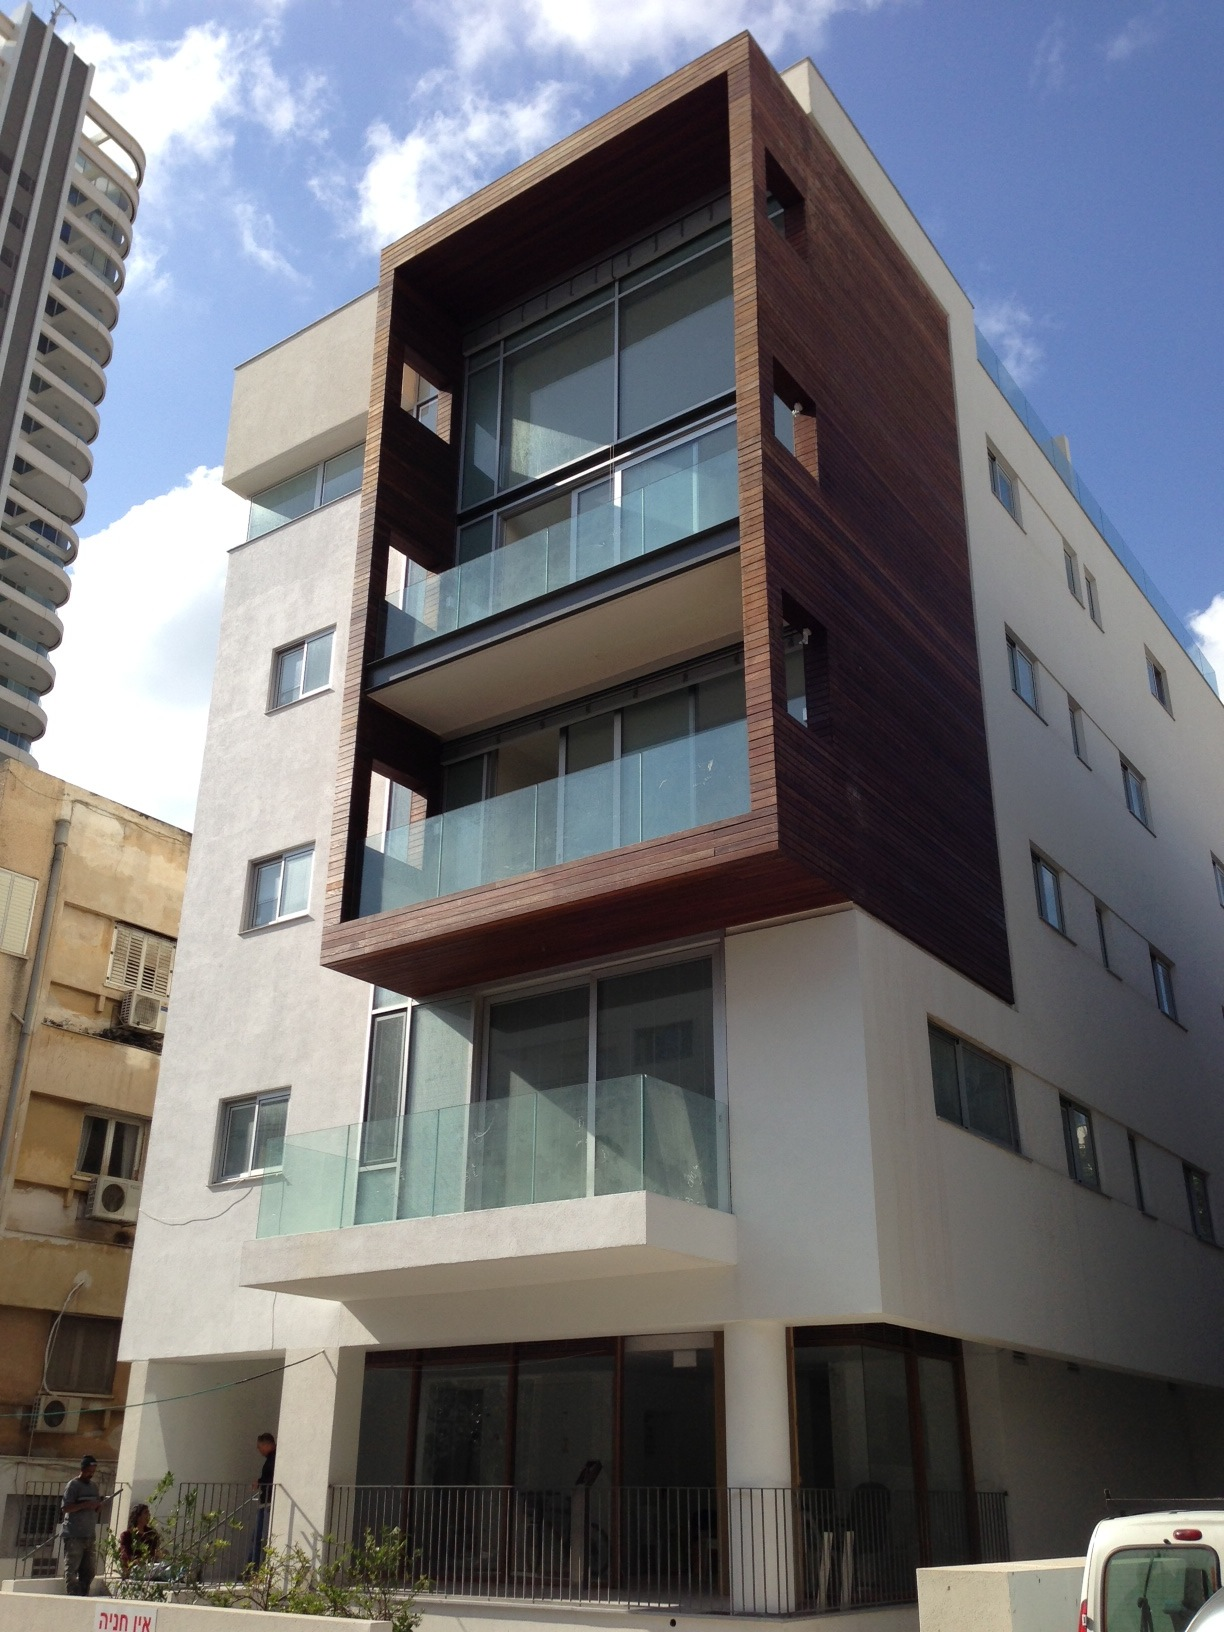 2BR Penthouse Apartment for Rent in Central Tel Aviv